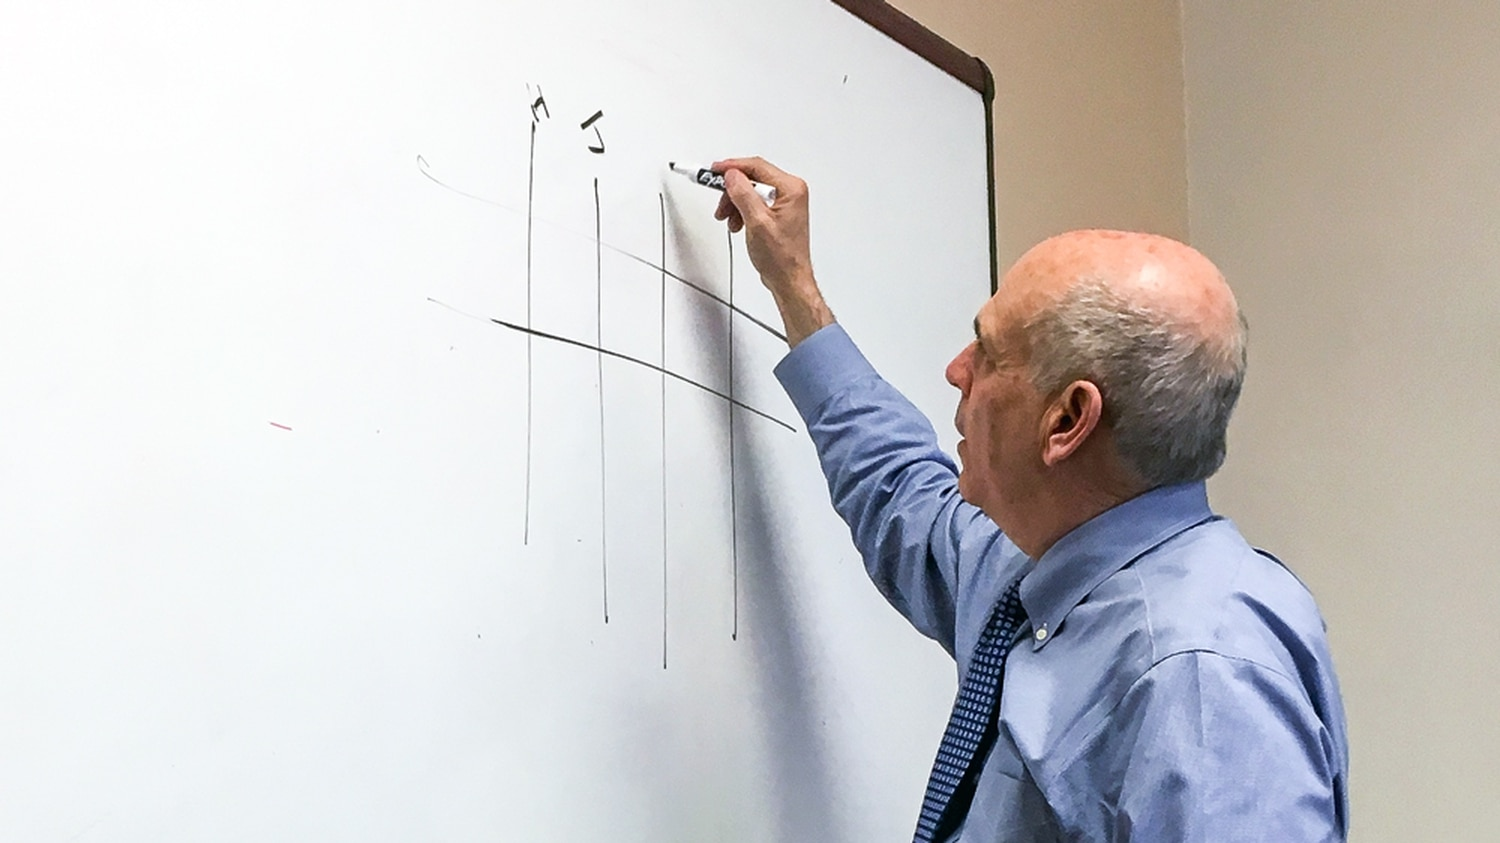 Mayor Alan Webber uses the whiteboard to discuss his way of thinking about the city's priorities.